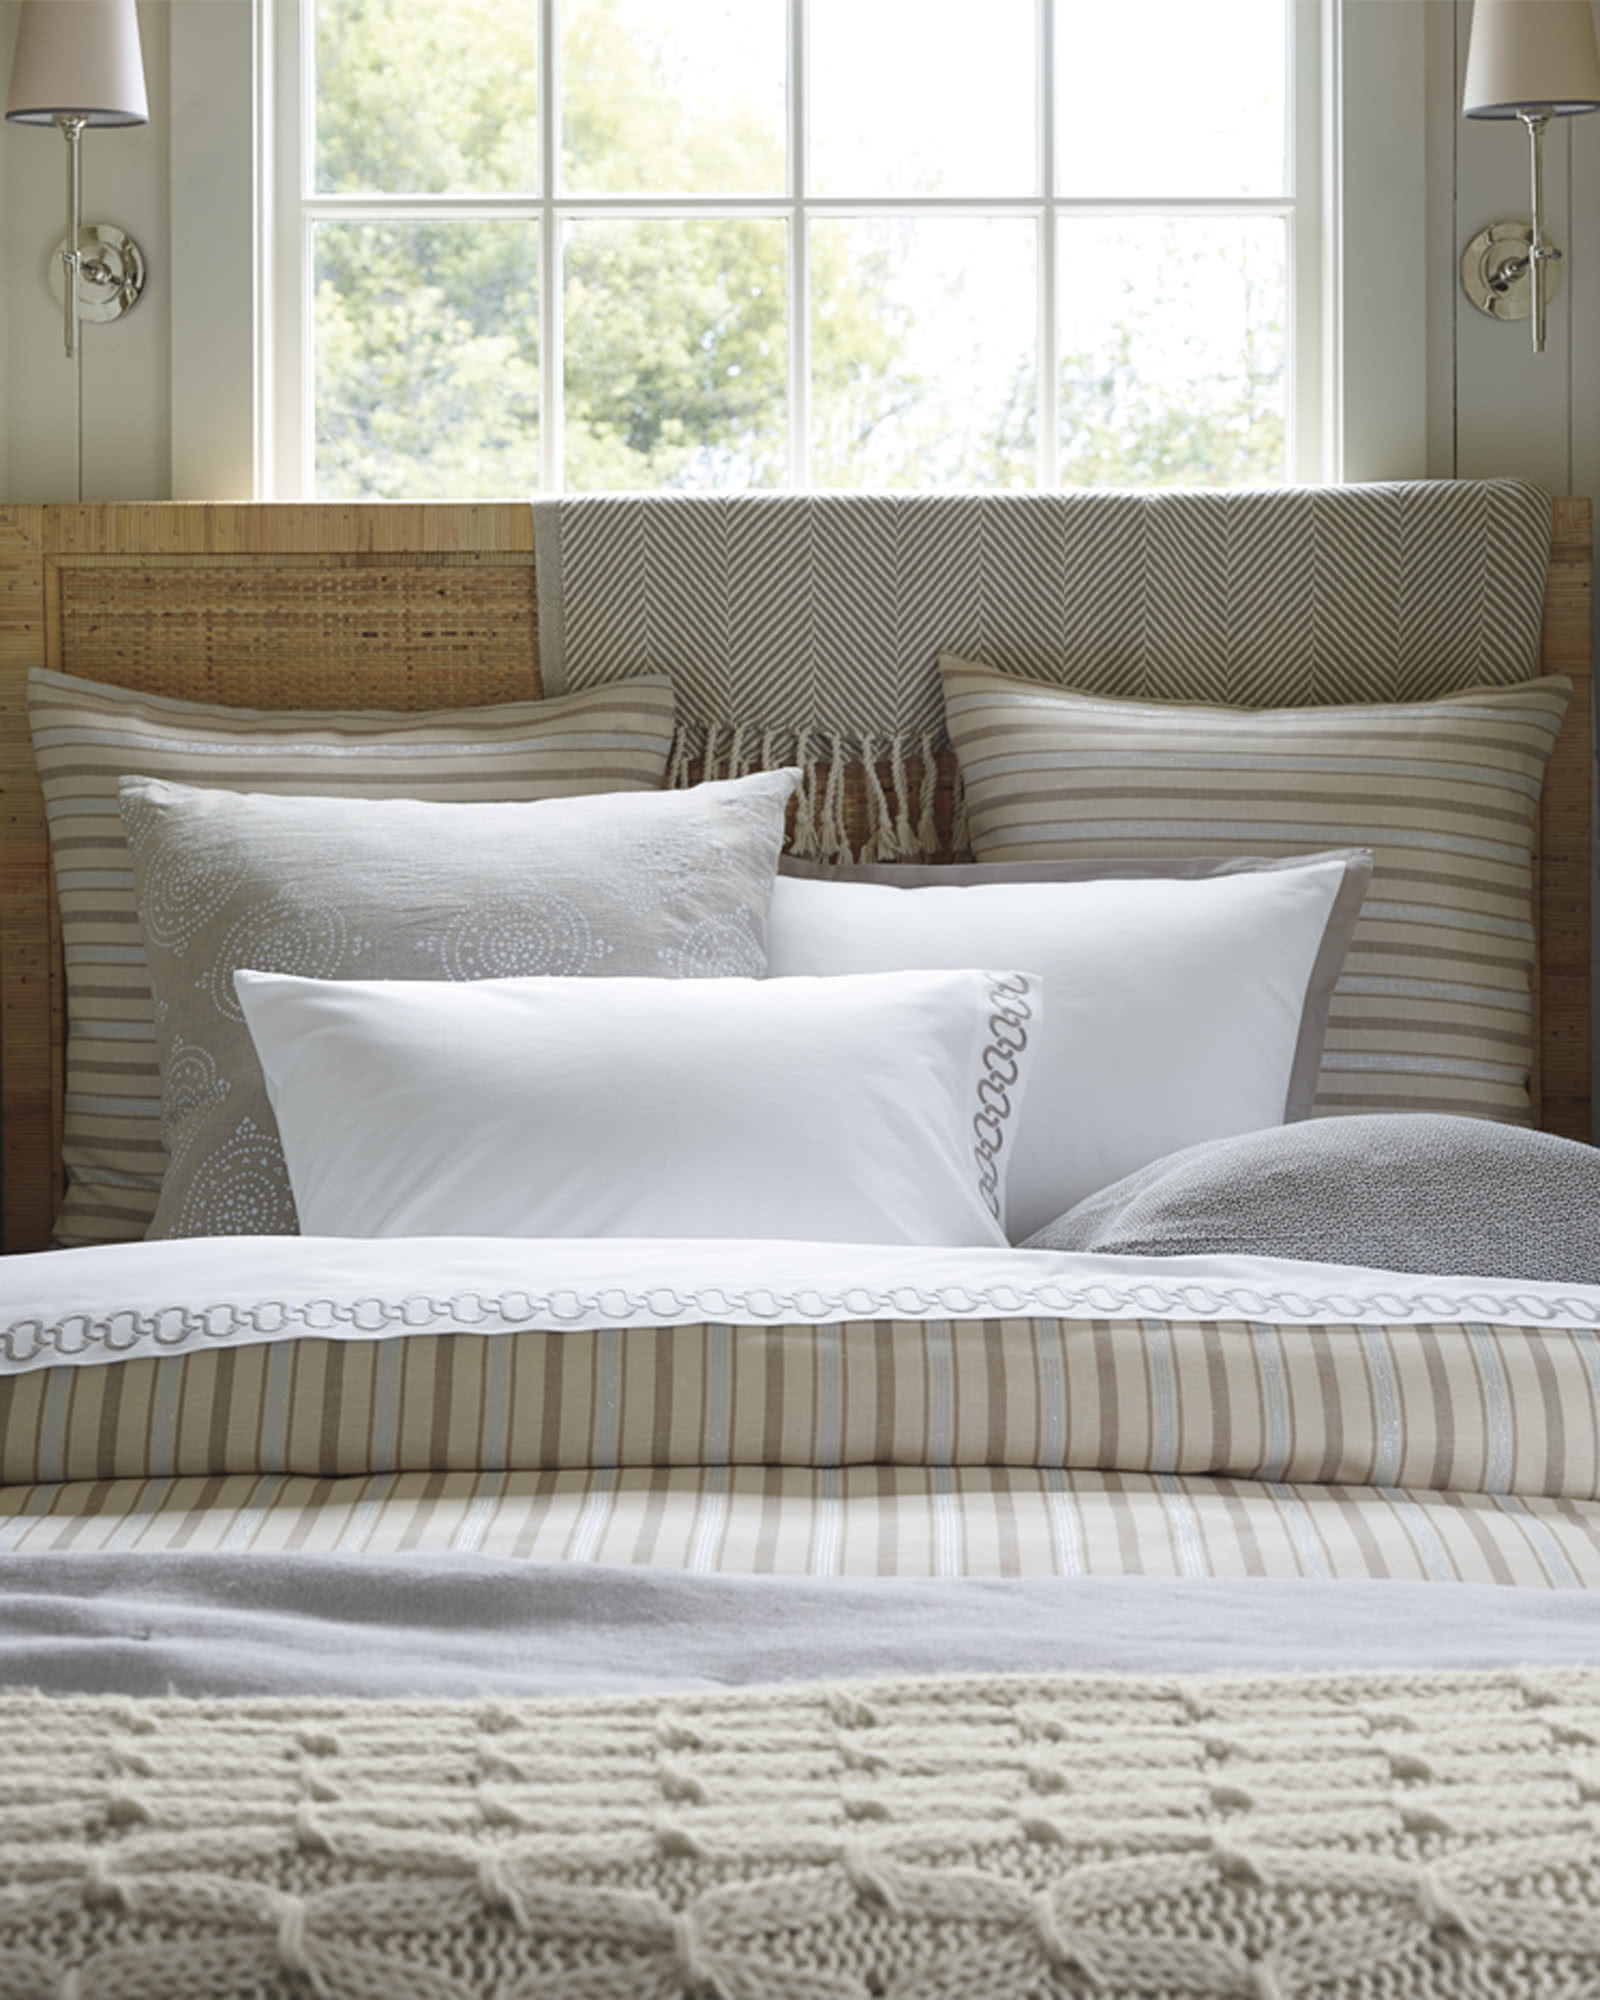 today stella copper bath bedding duvet percale cover ivy dot metallic product free overstock cotton shipping embroidery set ink mini with